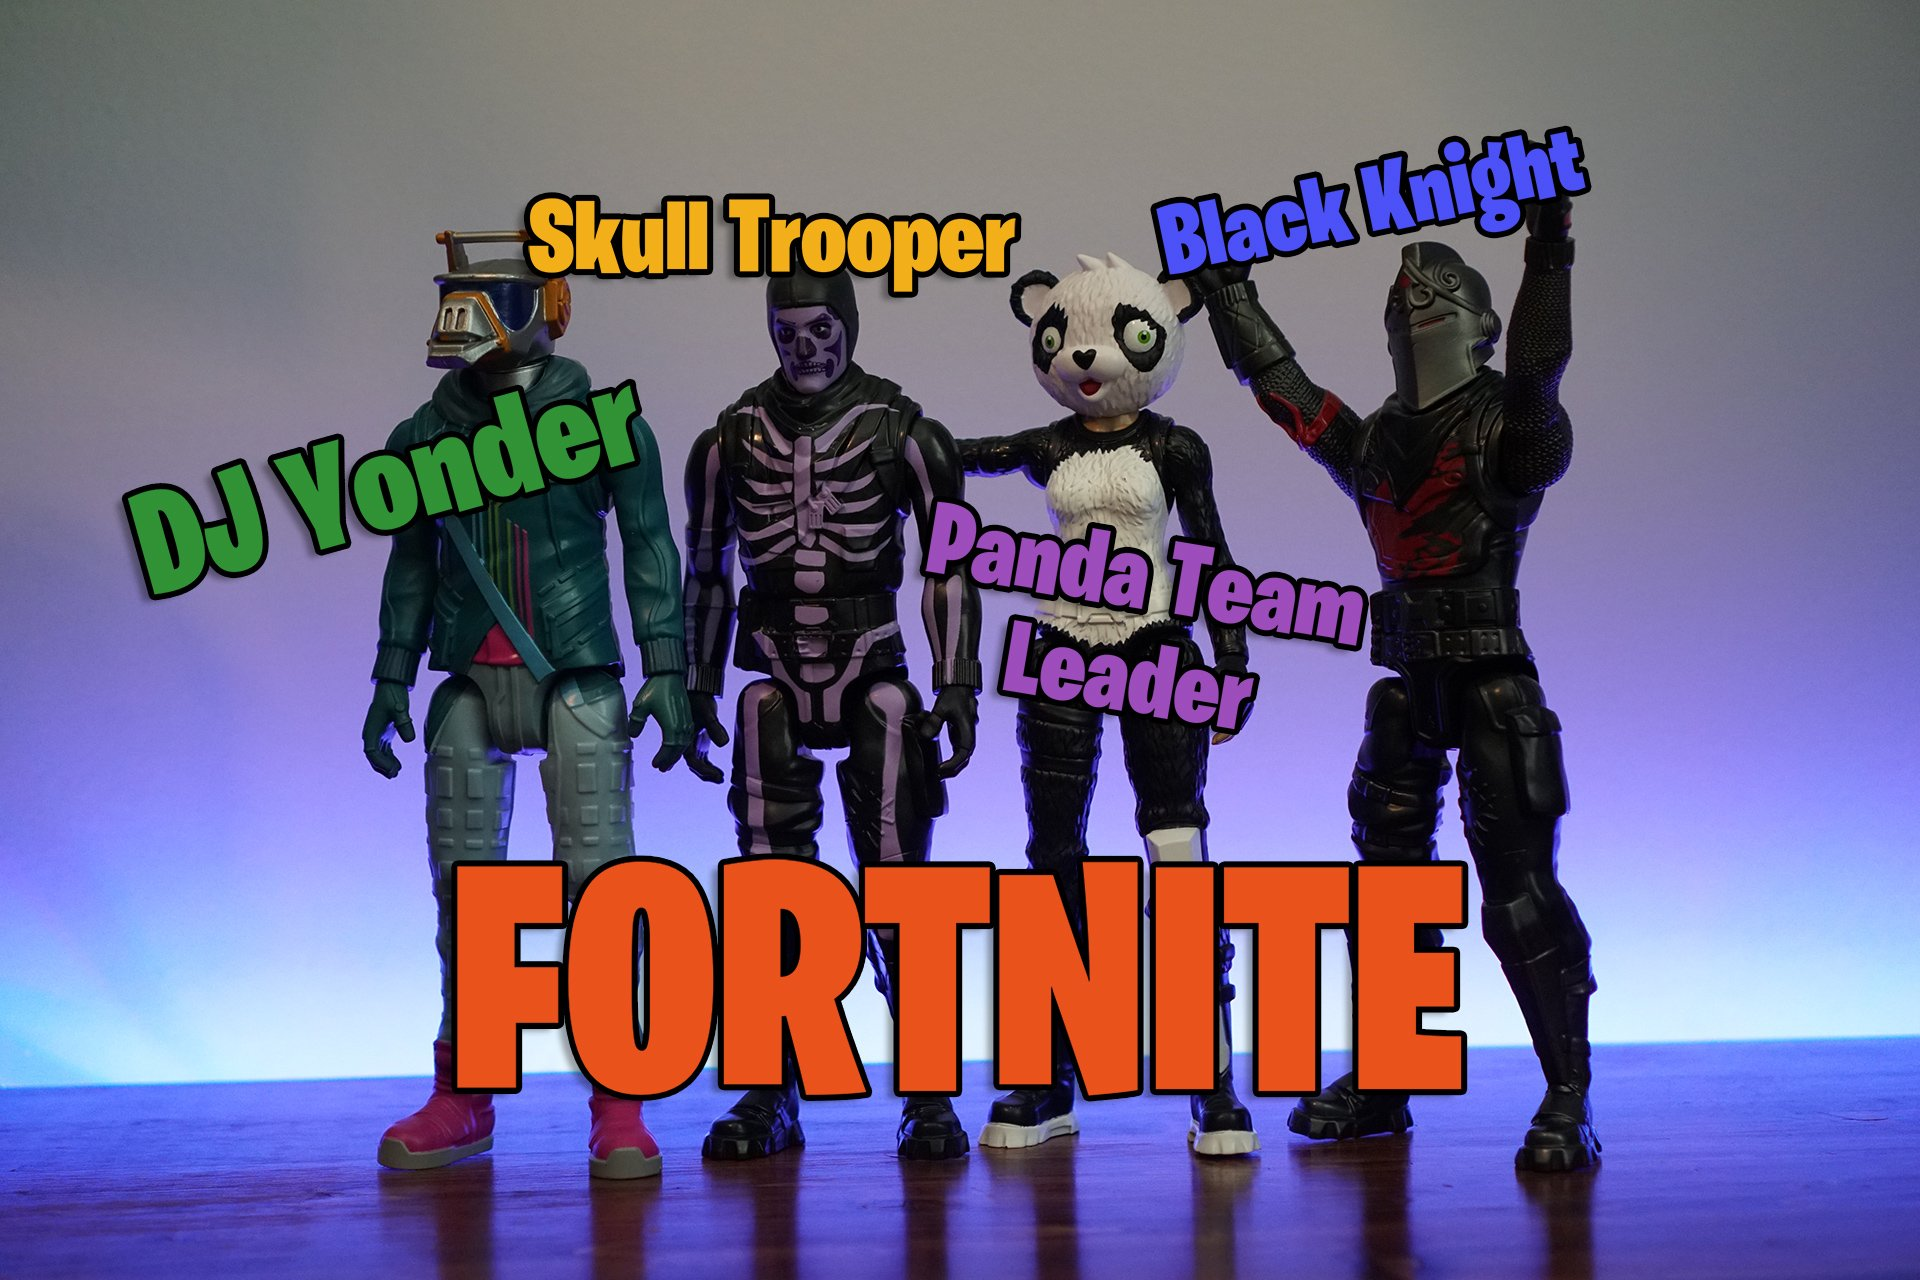 Fortnite Gift Set for 2019